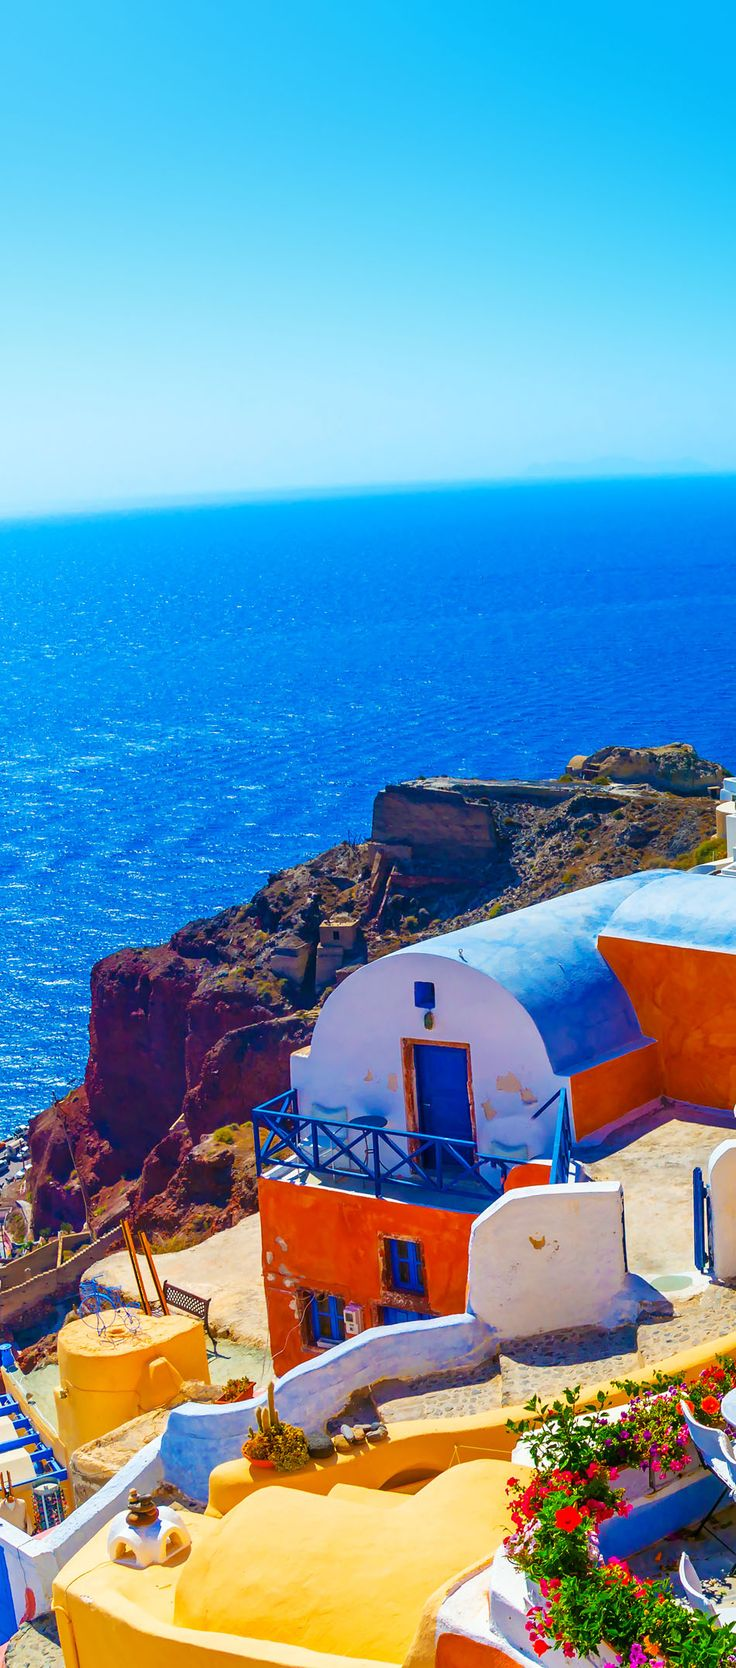 View to the sea from Oia the most beautiful village of Santorini island in Greece    |    10 Breathtaking Photos of World's Most Romantic Island